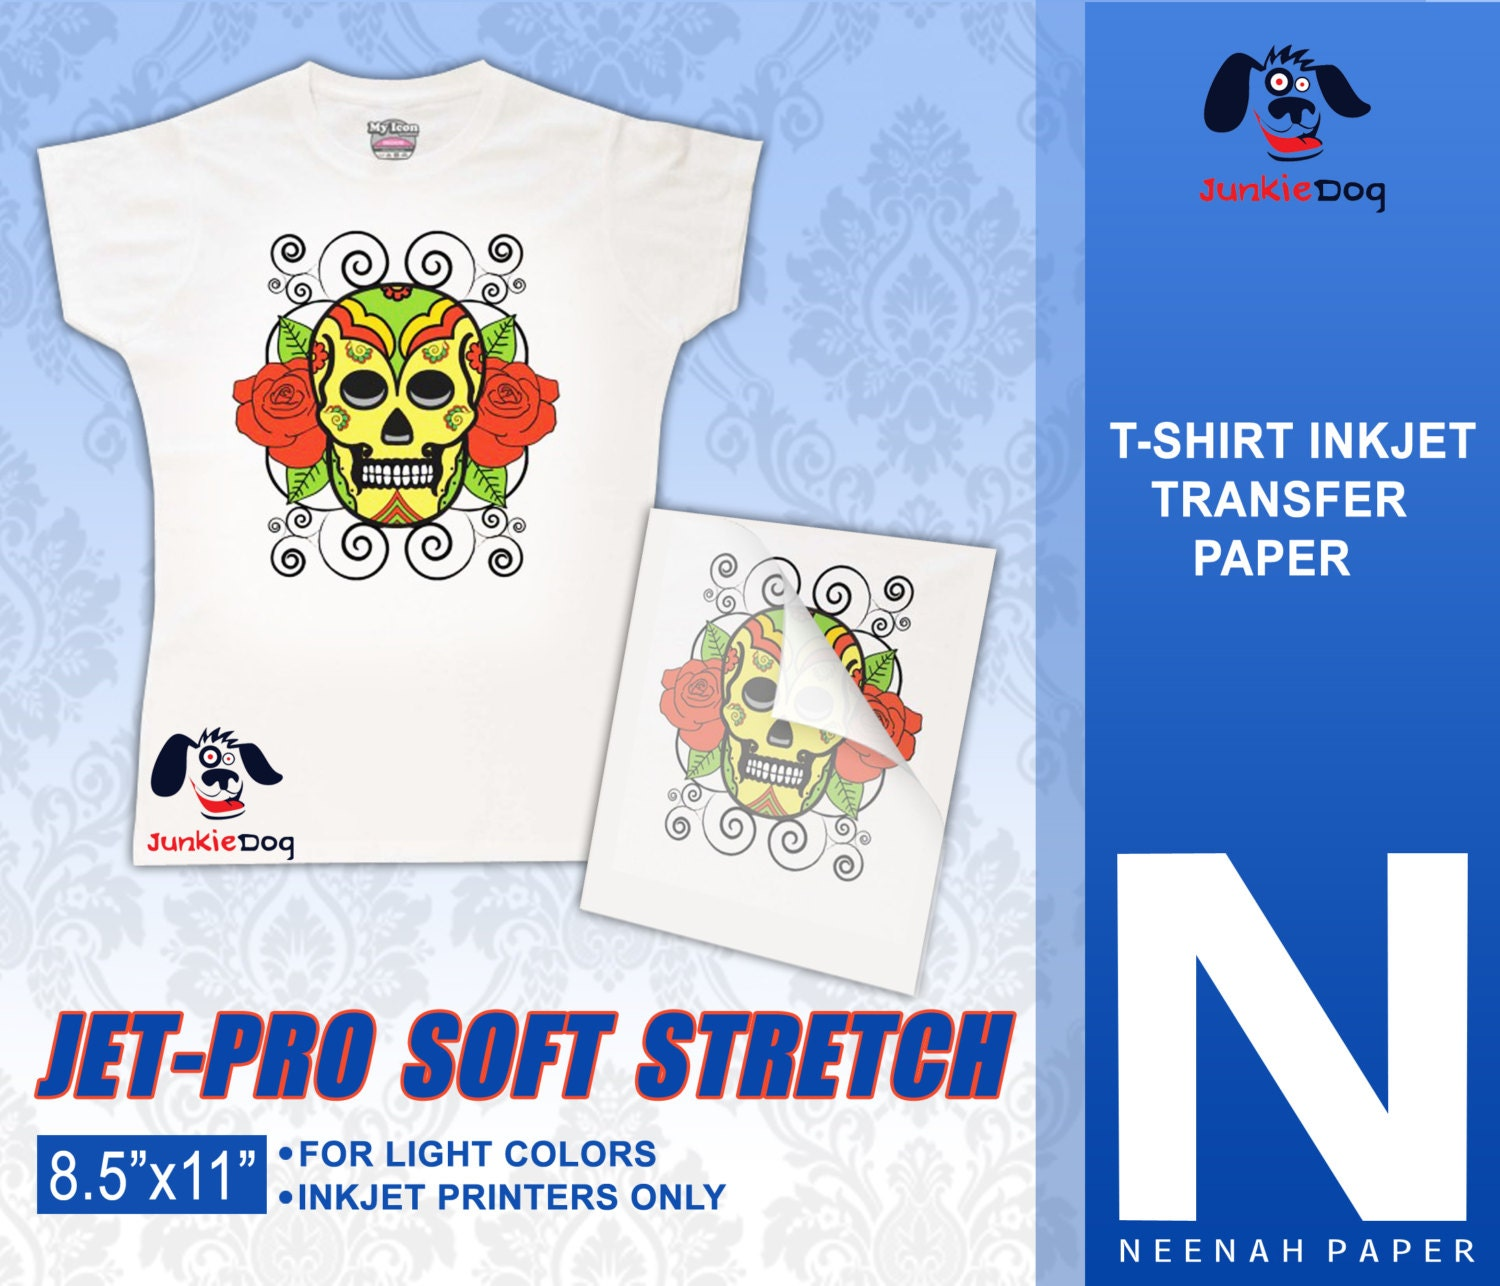 100 sheets neenah jet pro sofstretch inkjet heat for Best quality t shirt transfer paper